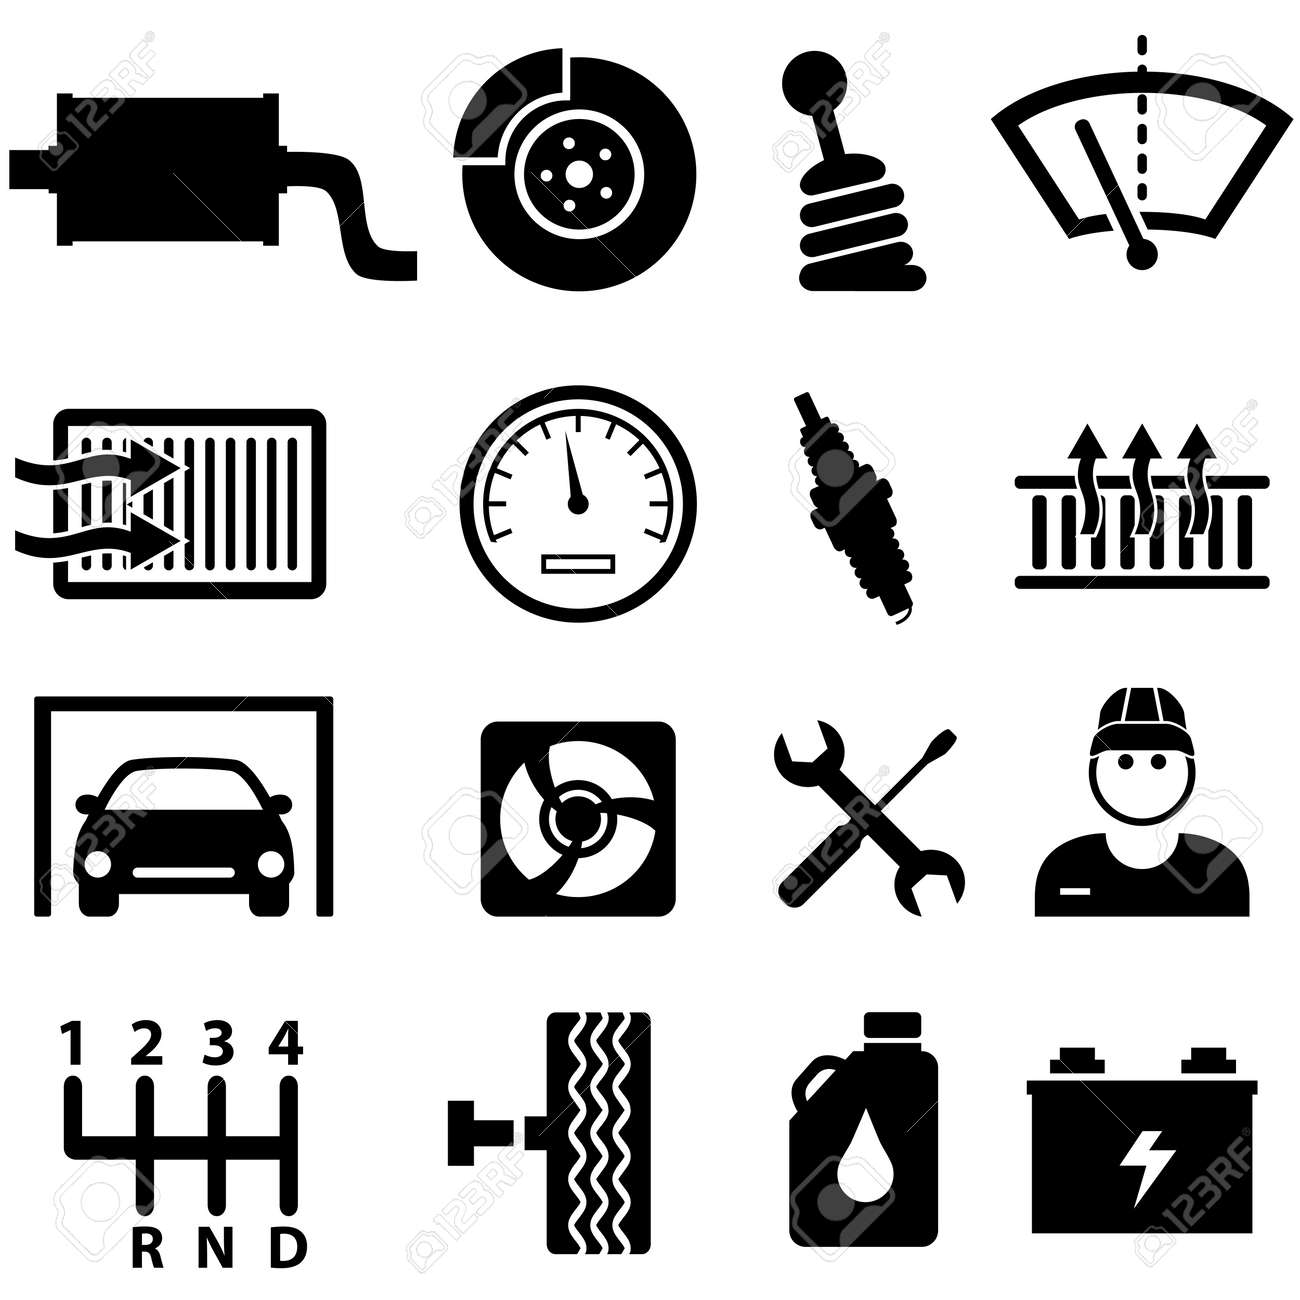 Car Repair Shop And Mechanic Icon Set Royalty Free Cliparts Vectors